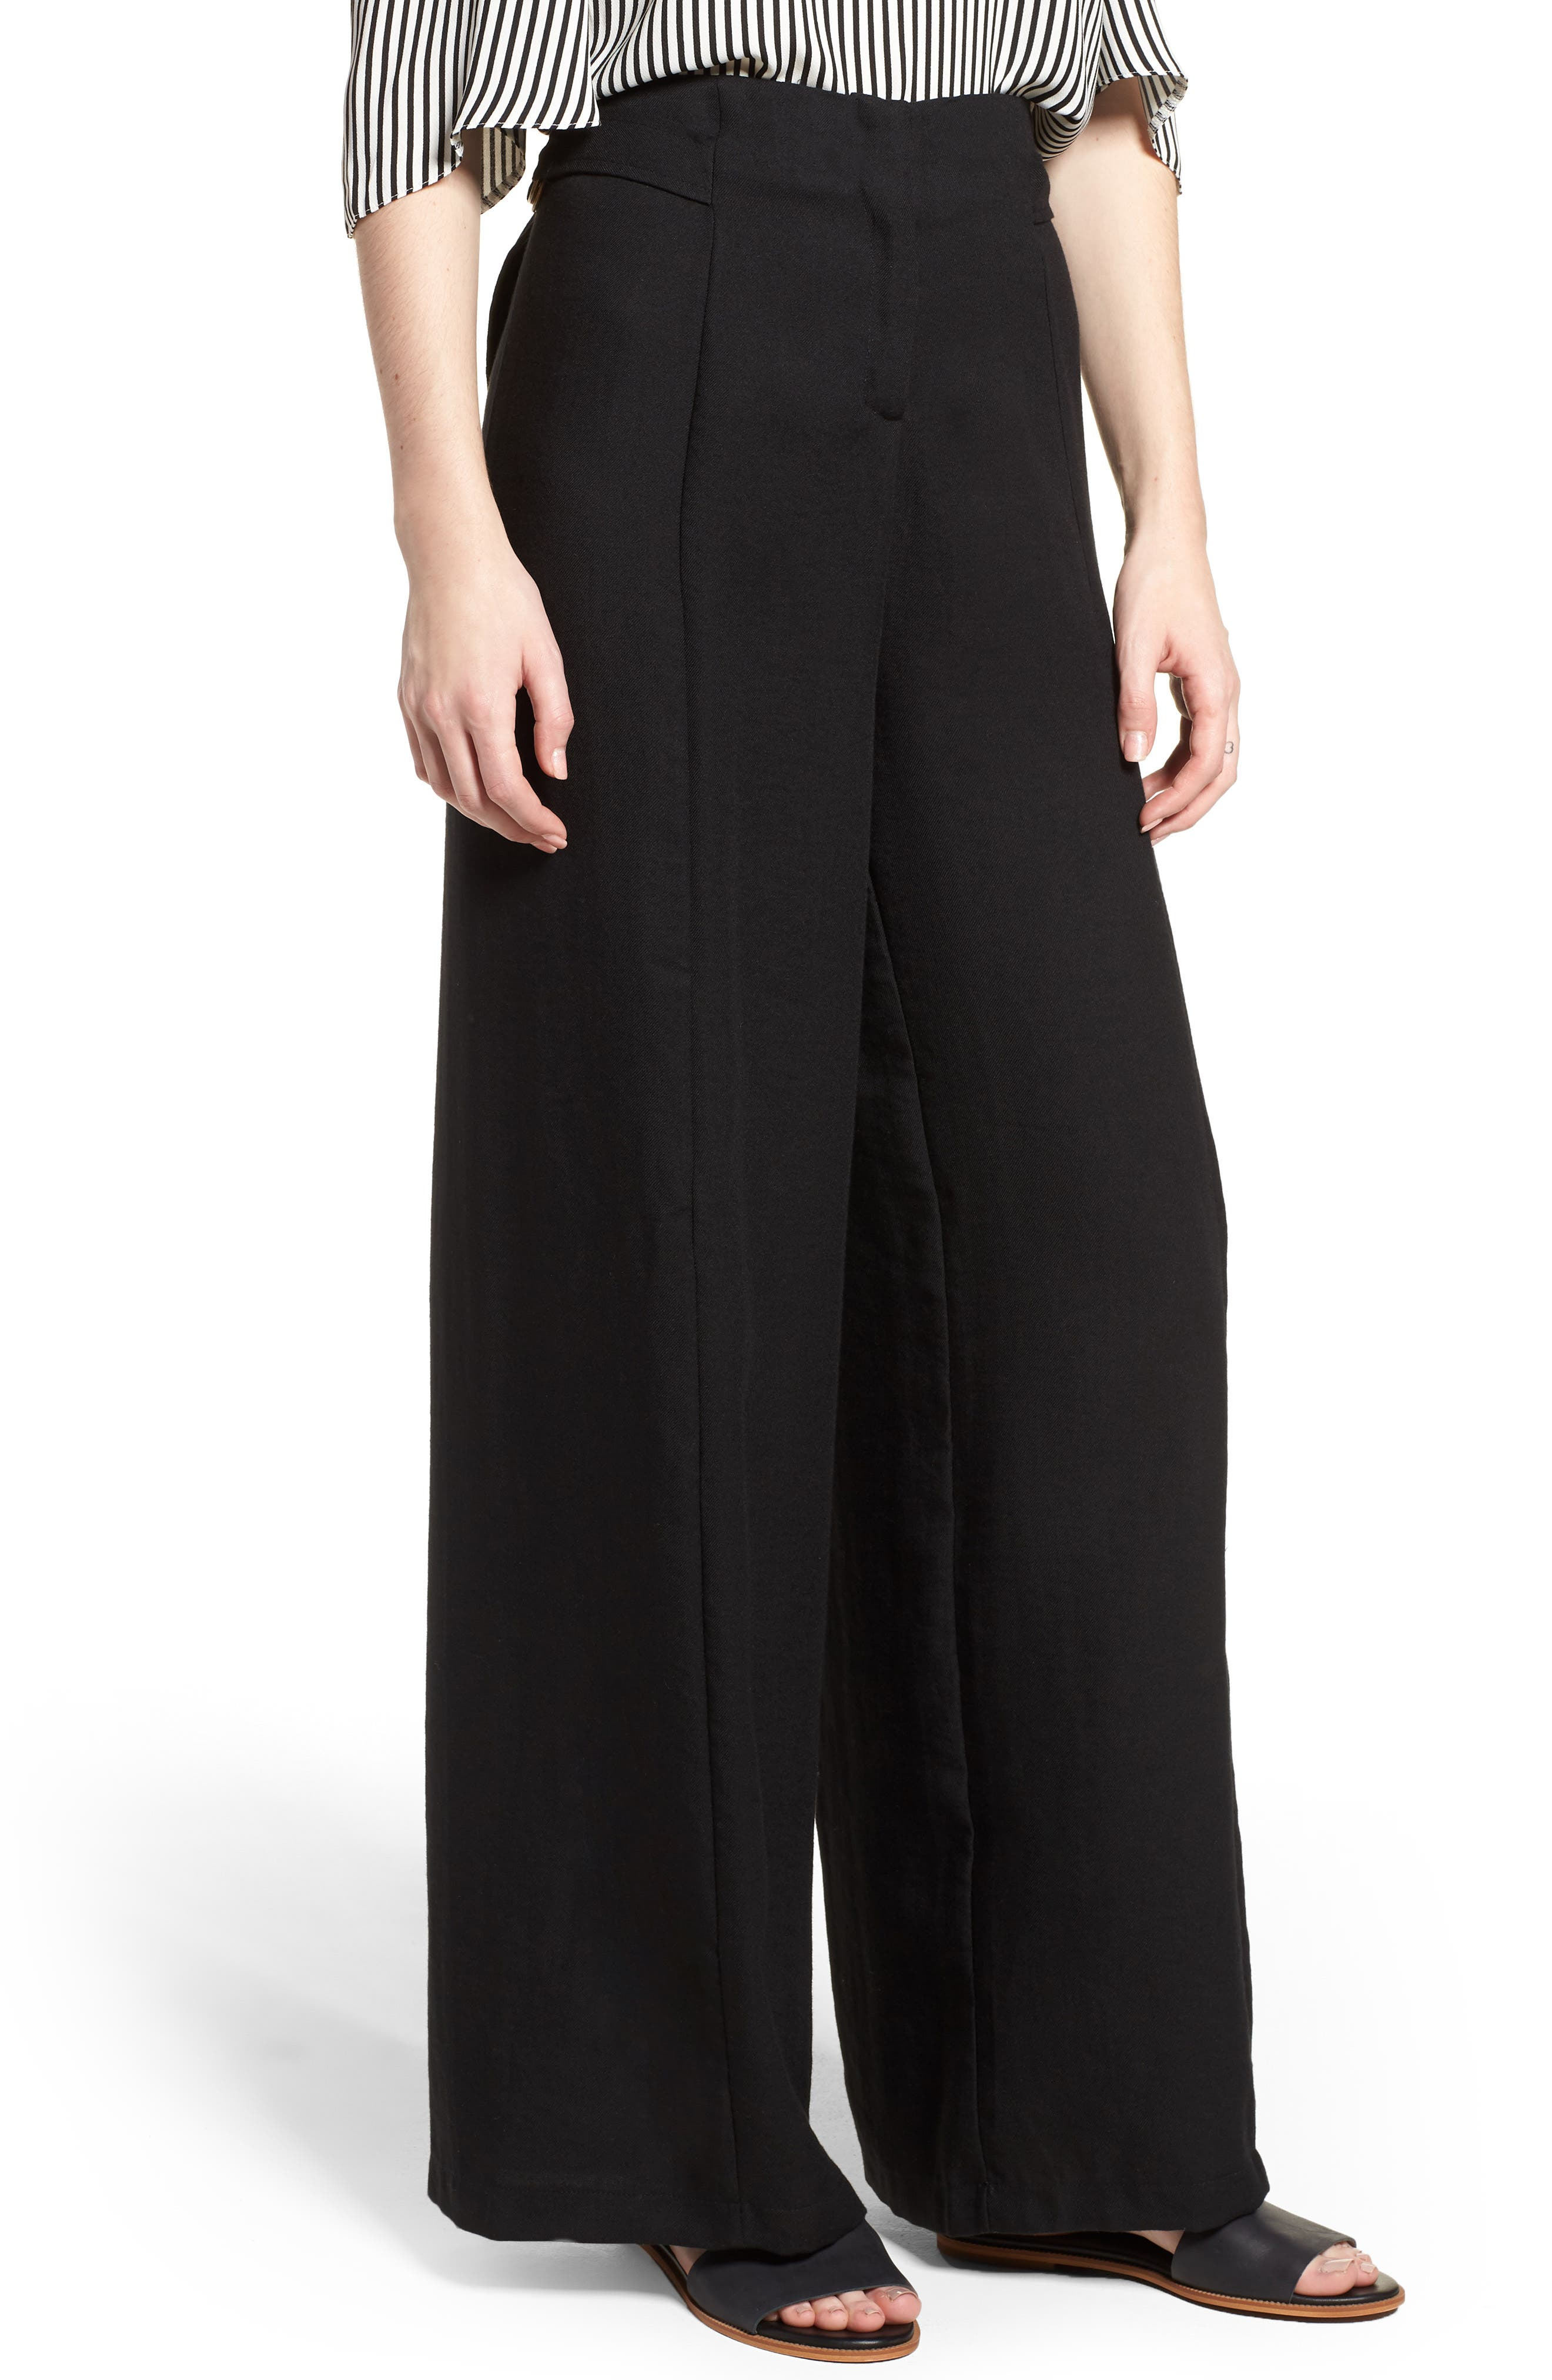 Bishop + Young O-Ring Wide Leg Pants,                         Main,                         color, 001